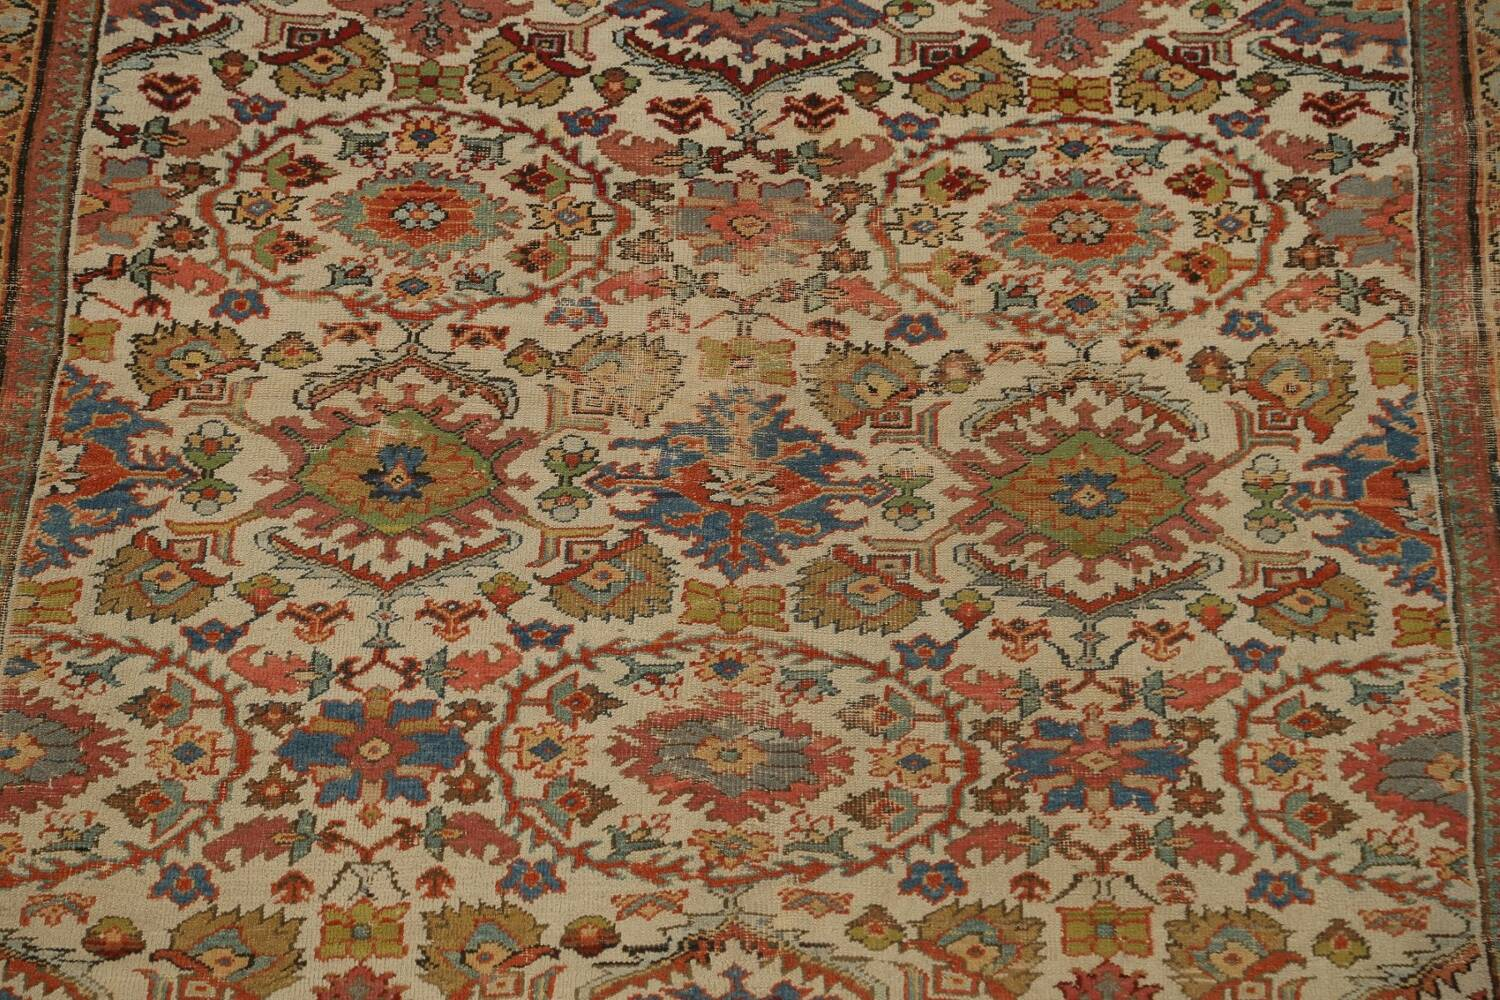 Pre-1900 Antique Vegetable Dye Sultanabad Persian Area Rug 9x12 image 4